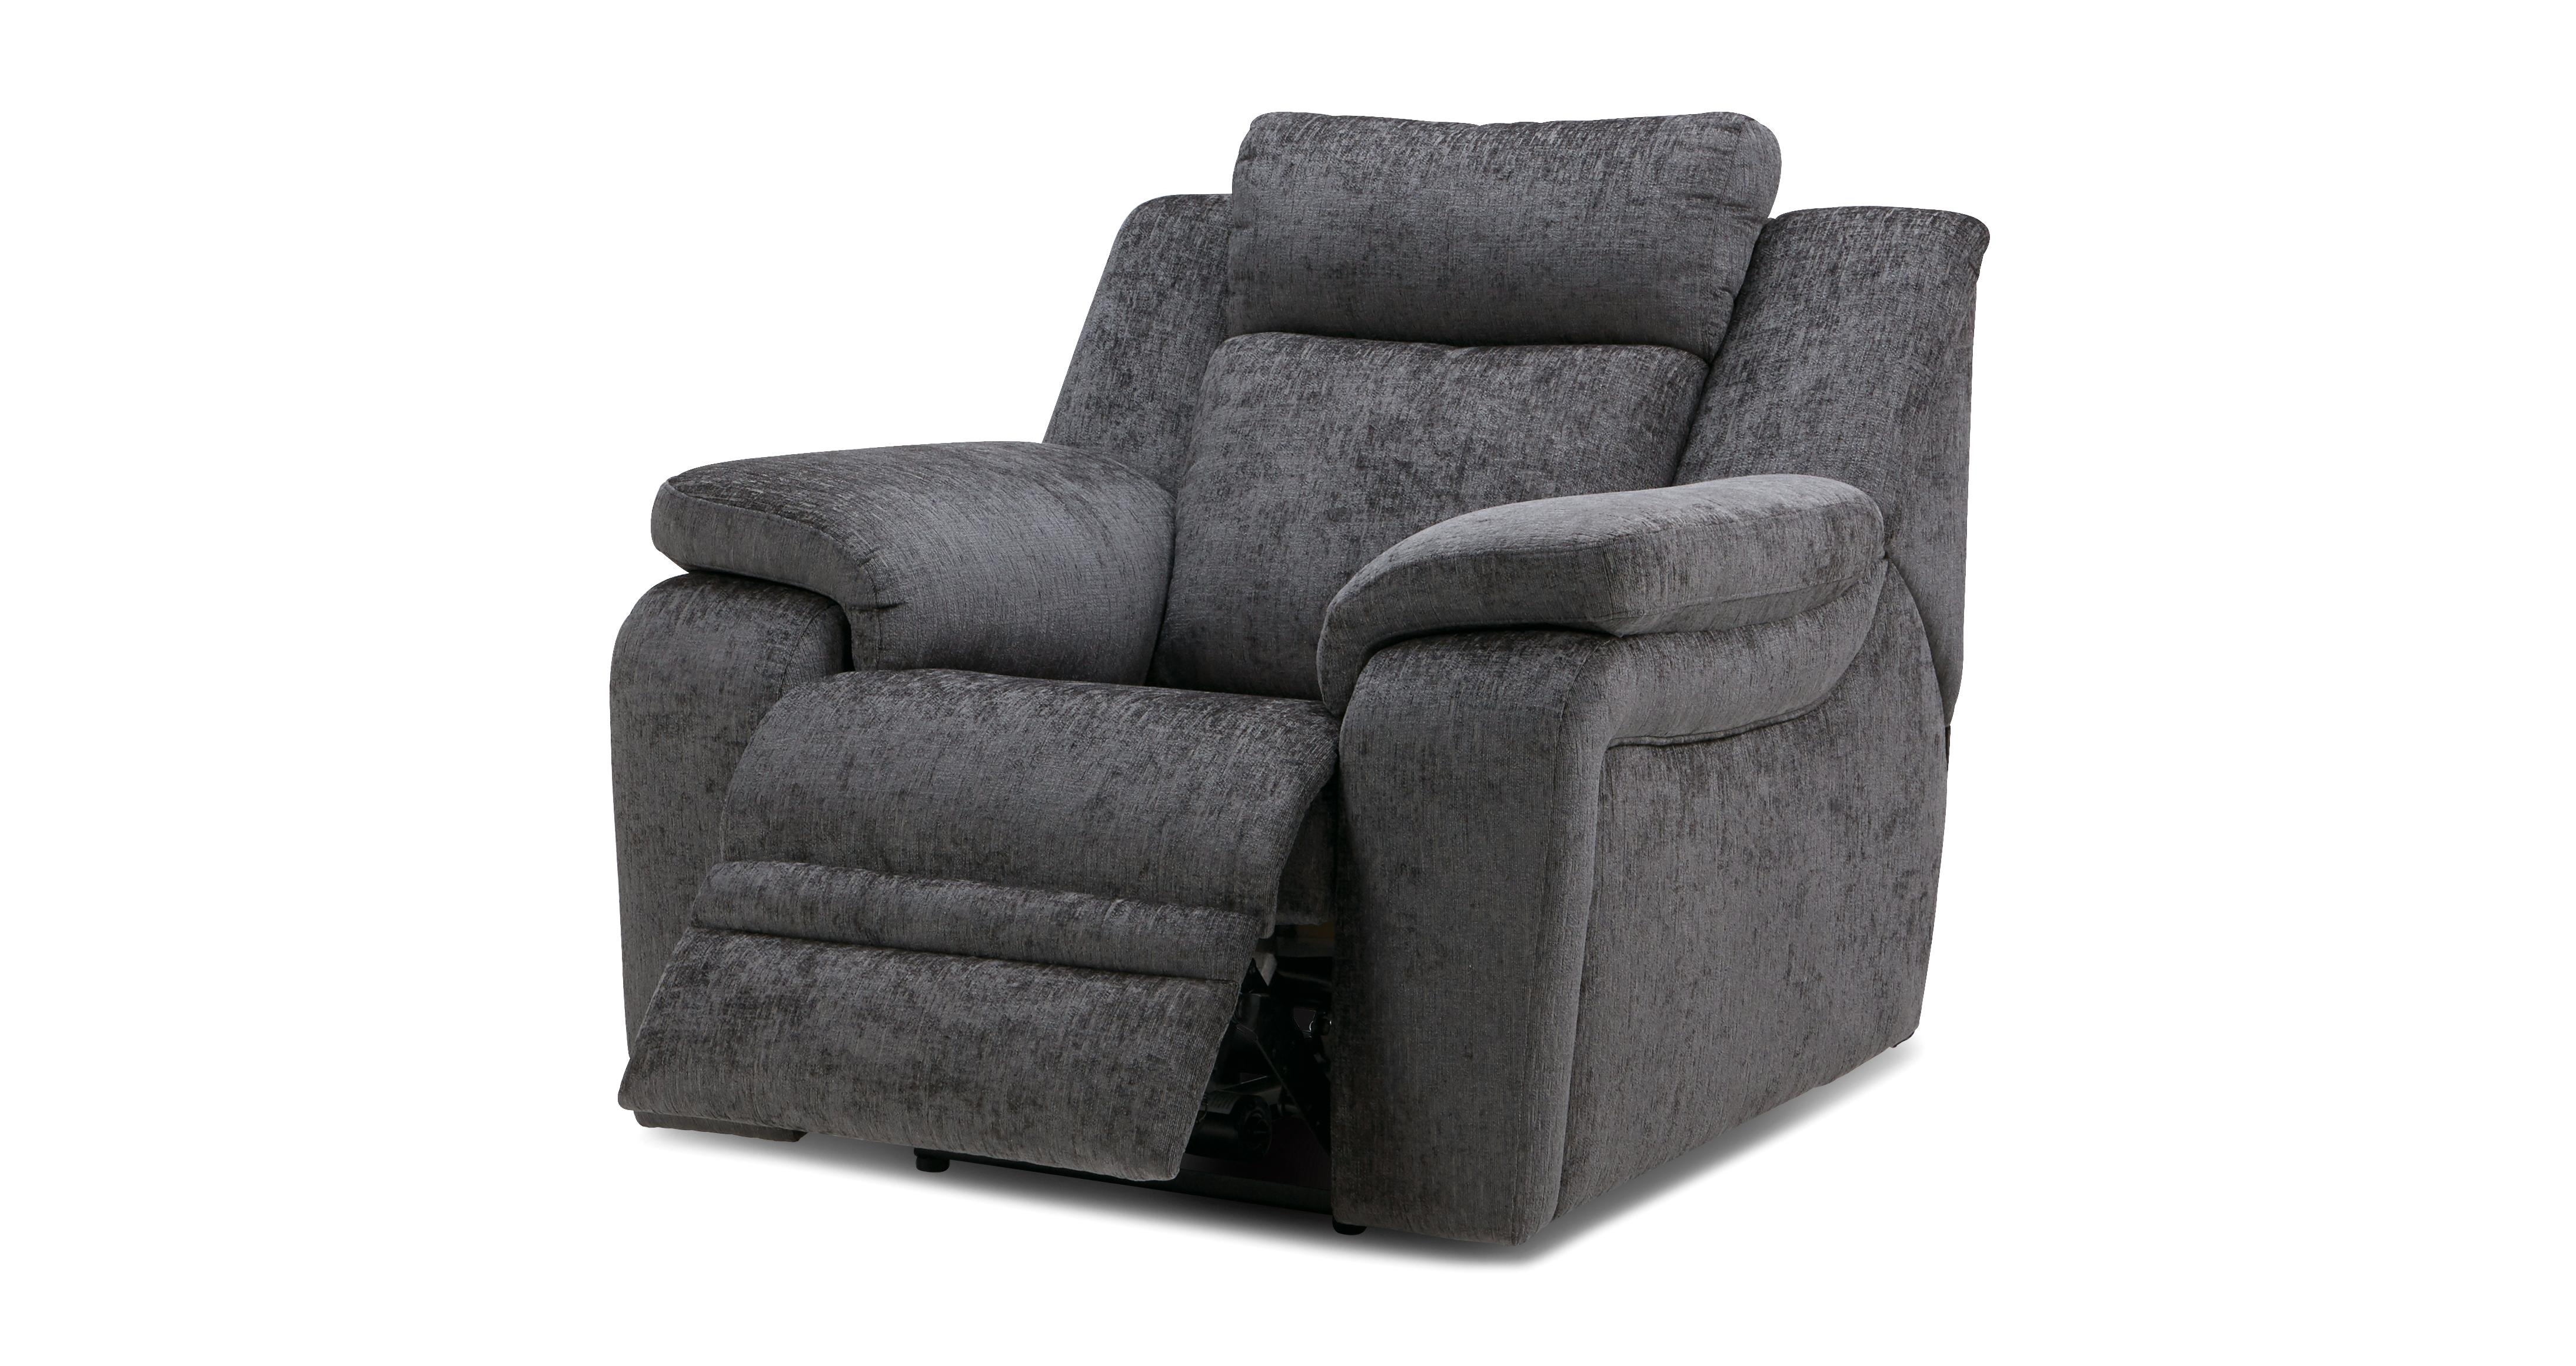 electric recliner sofa not working bed wooden frame uk dfs cable review home co